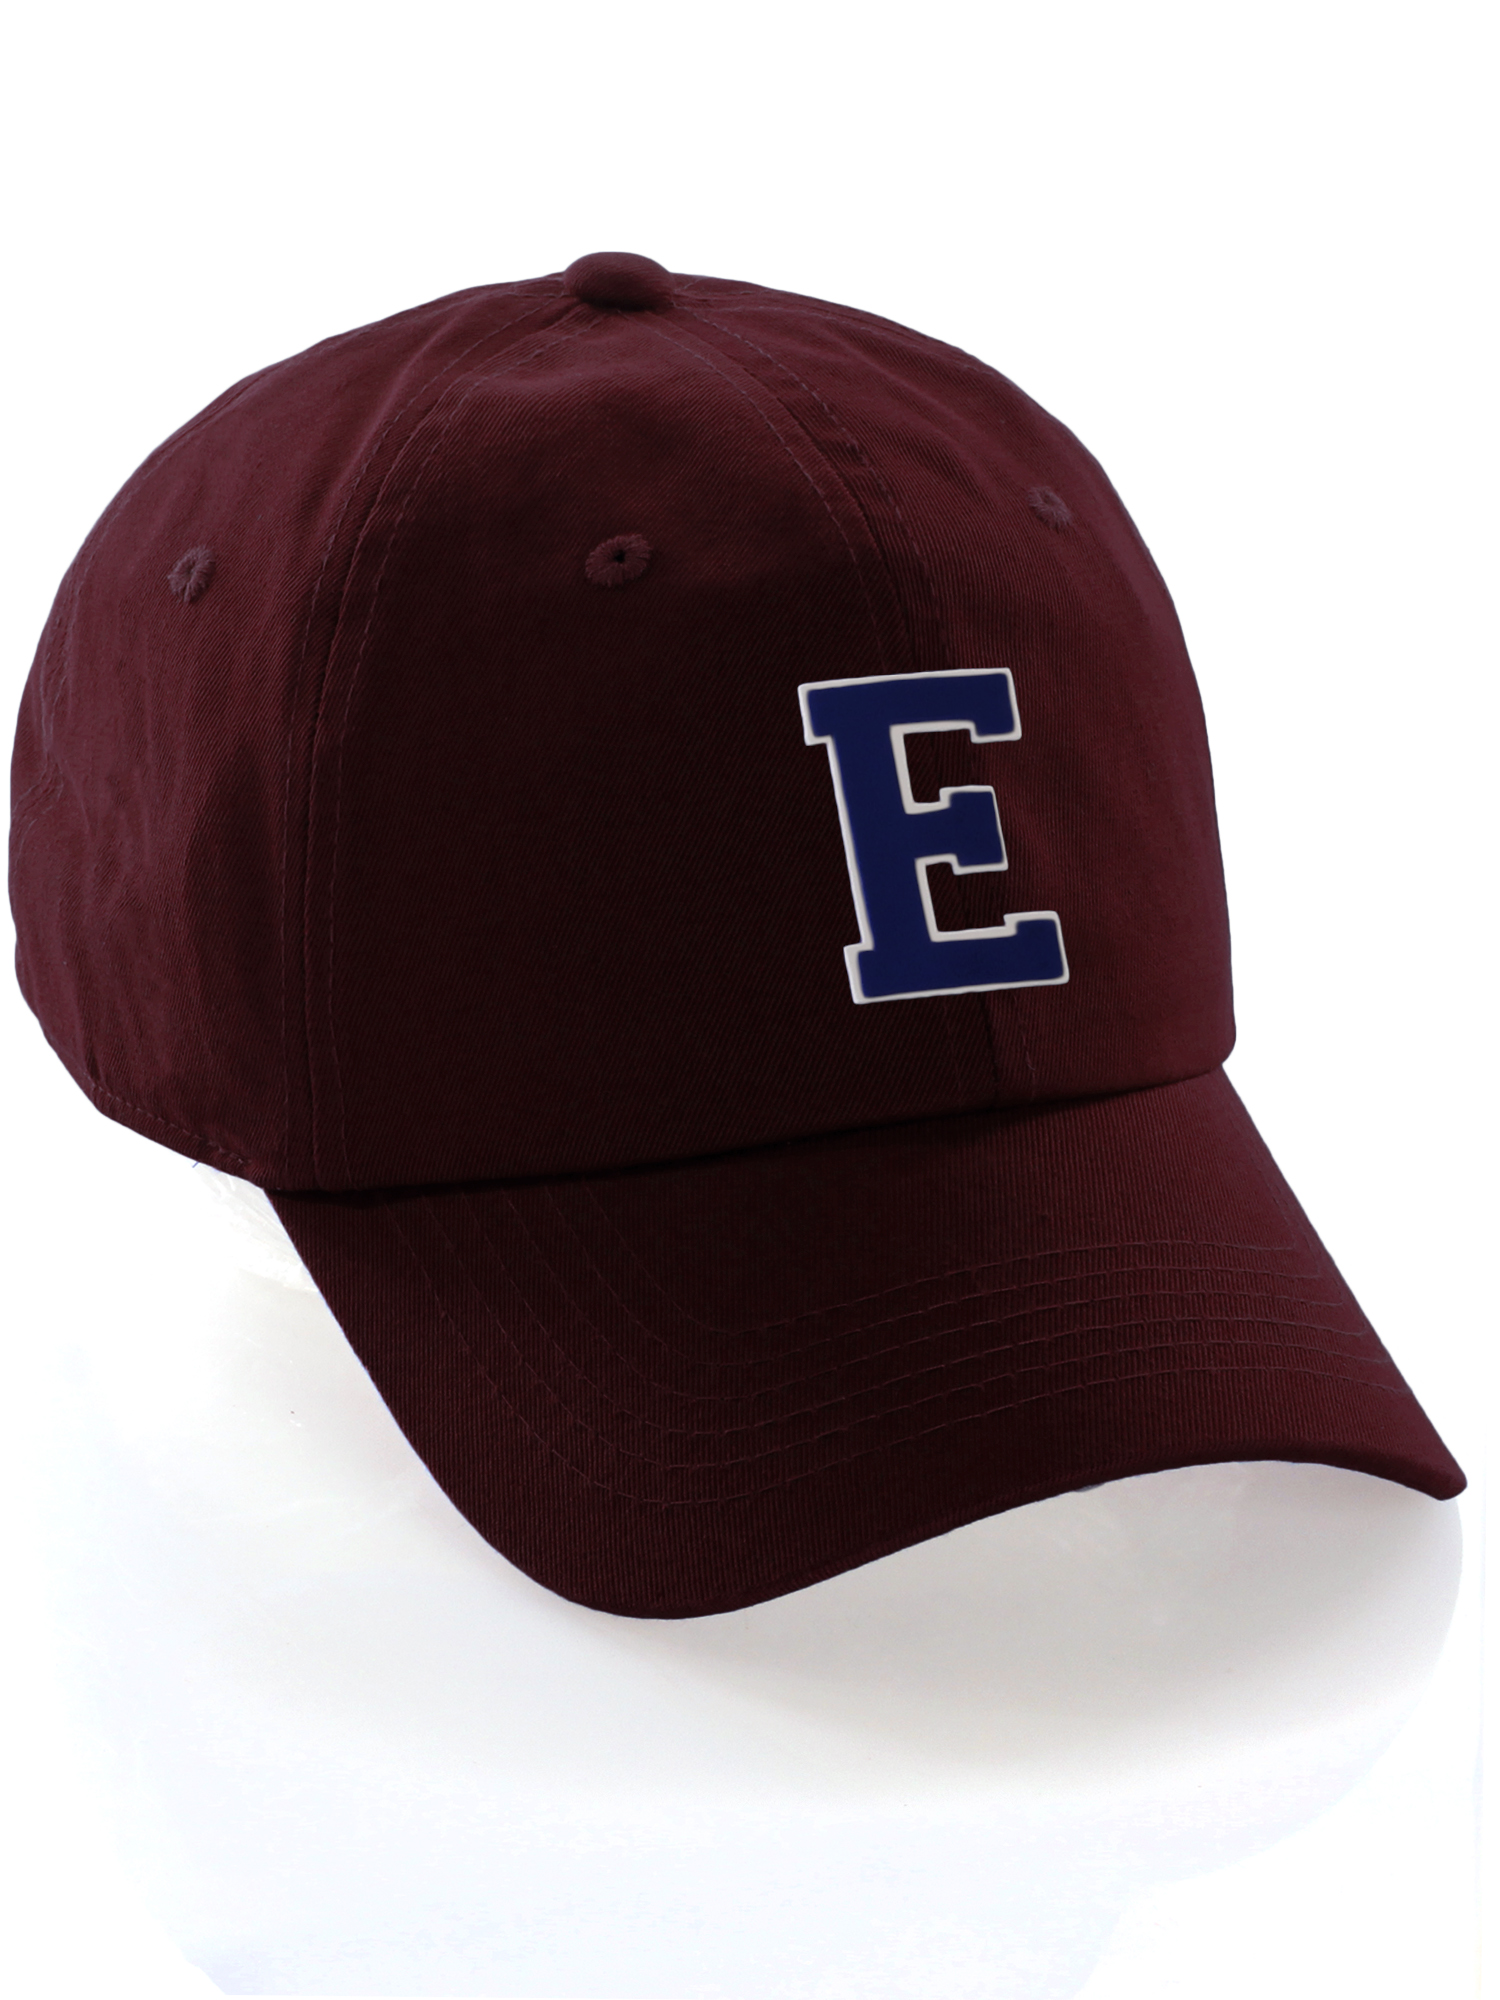 13e590400 Custom Dad Hat A-Z Initial Raised Letters Classic Baseball Cap, Burgundy Wh  Navy